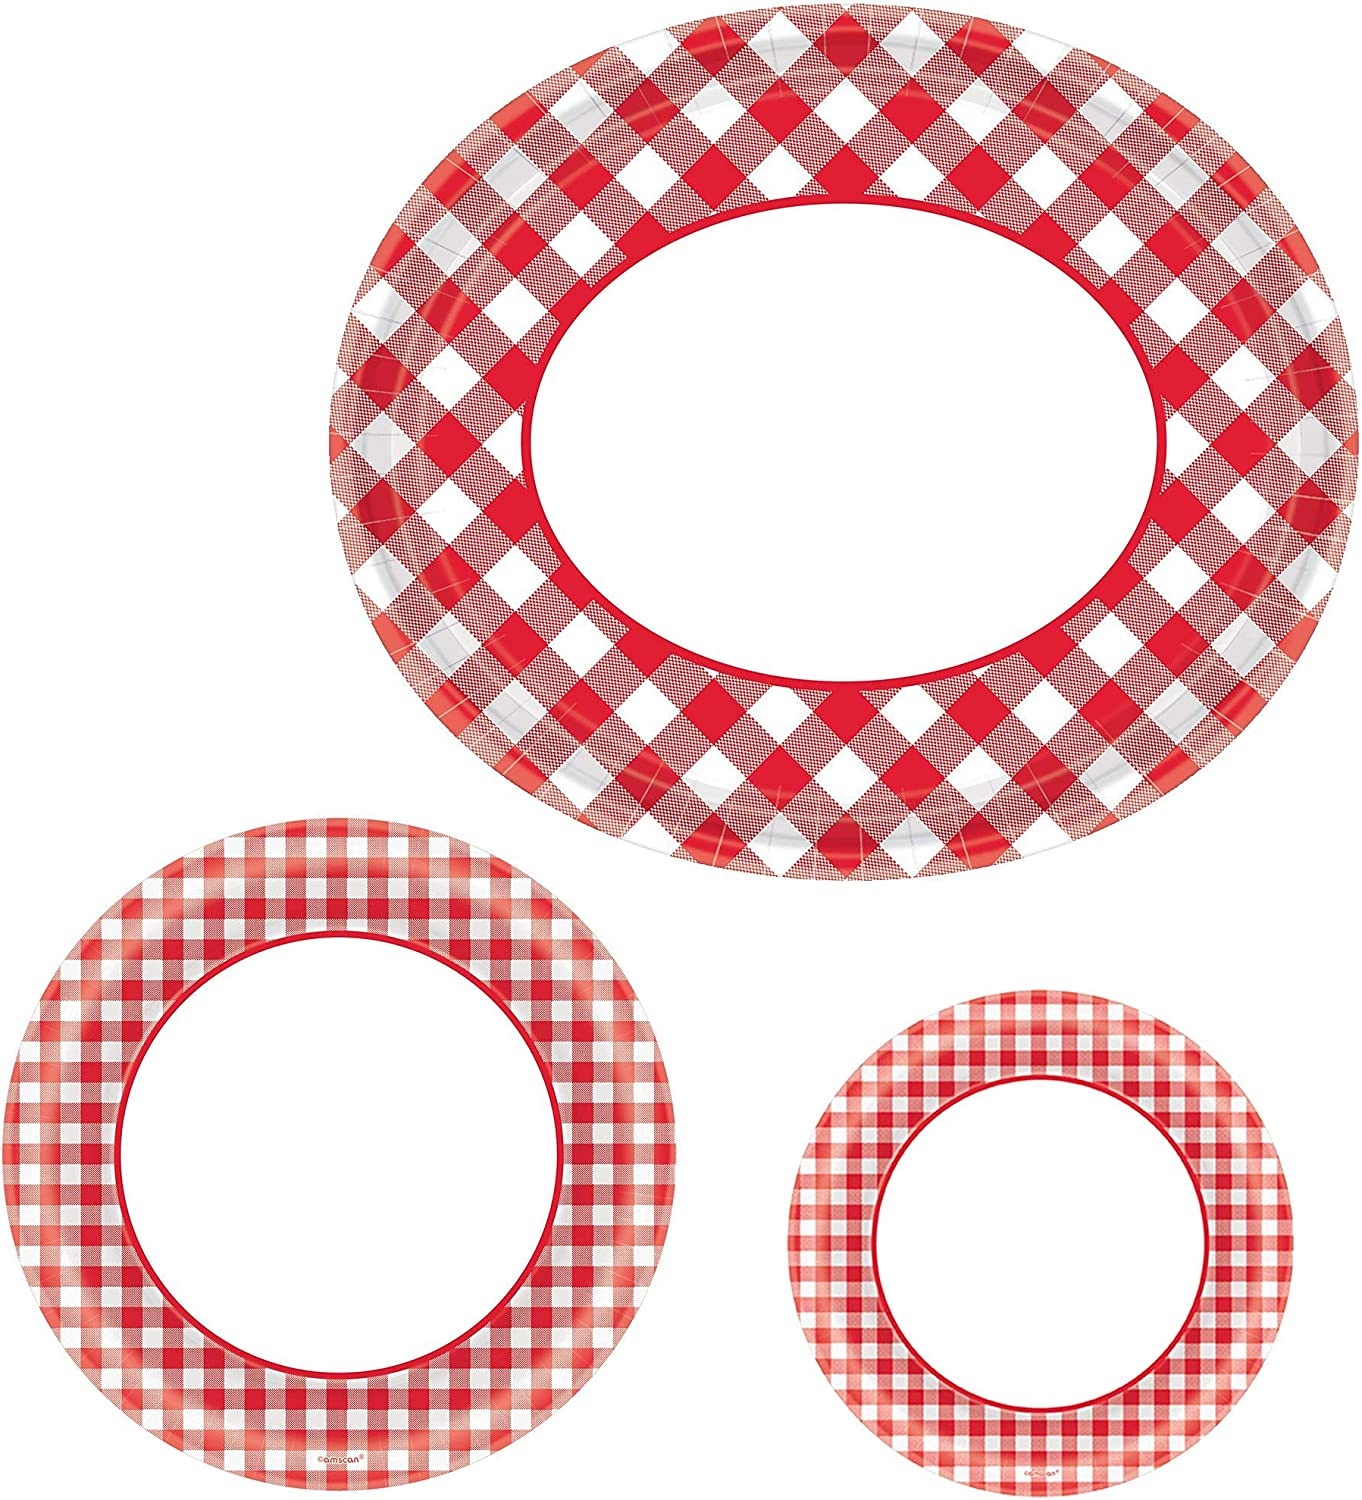 Party New popularity City Picnic Red Omaha Mall Gingham Buffet Supplies Plate 12 for